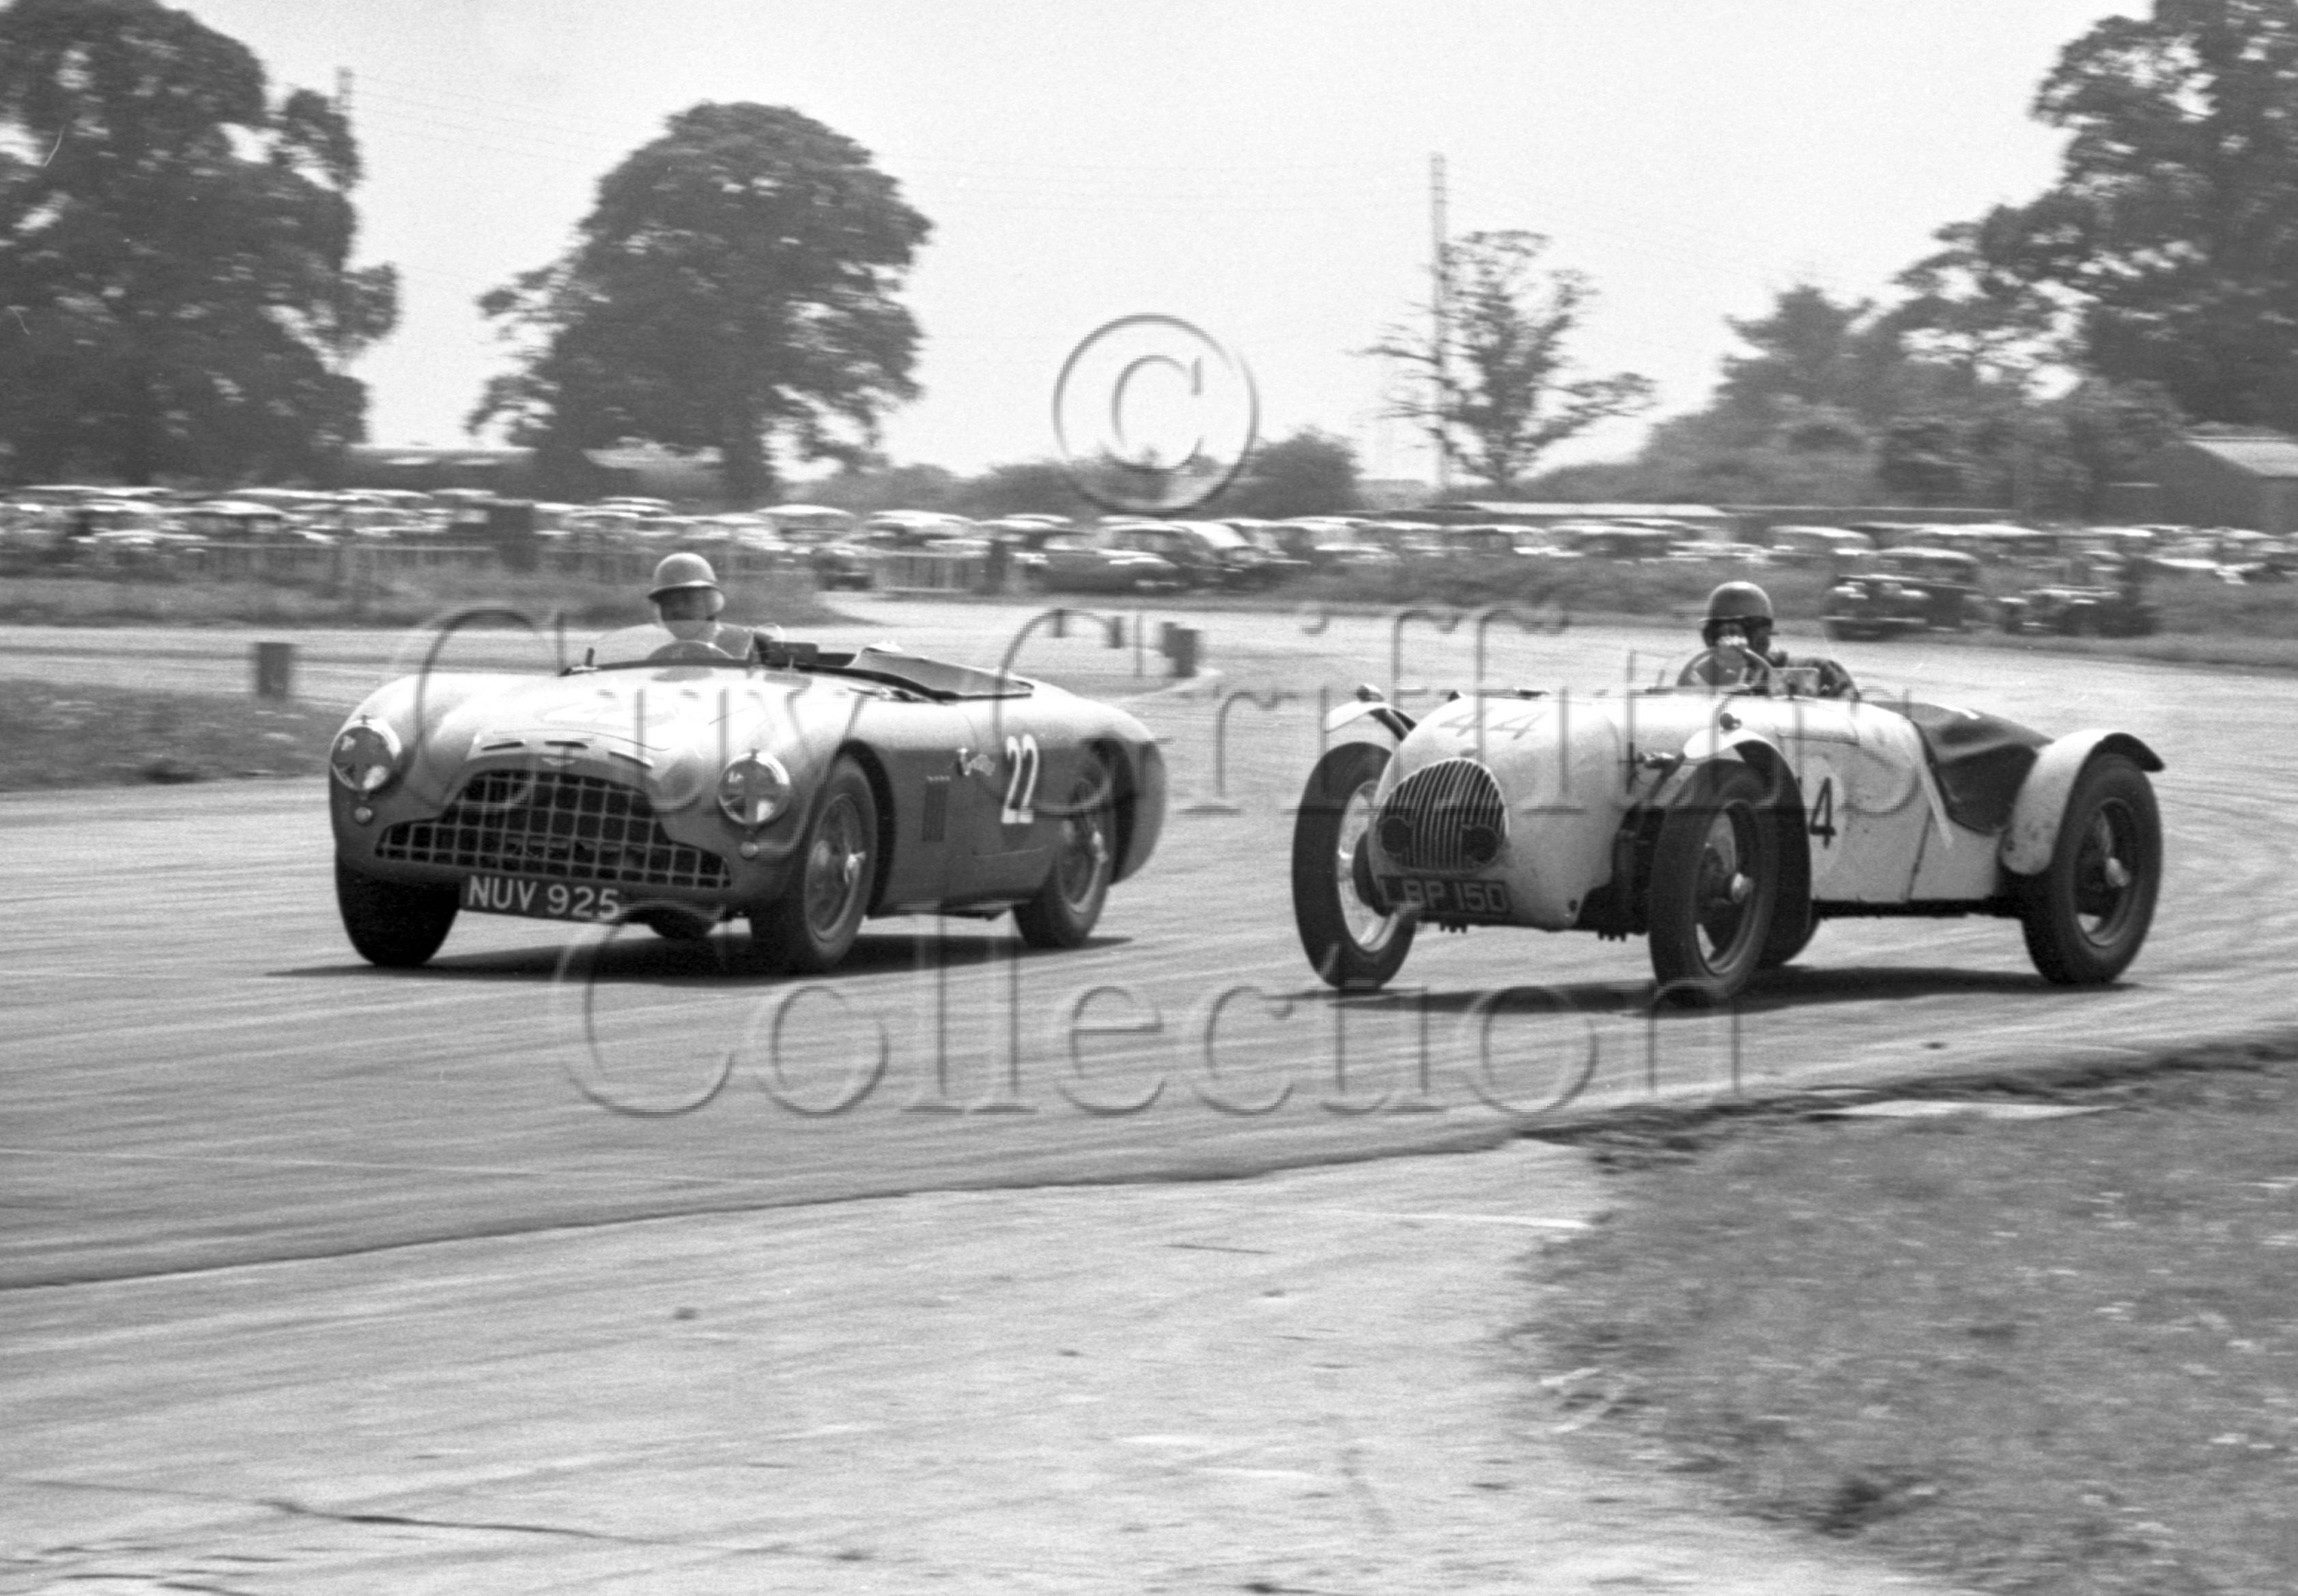 72-394–K-Downing–Aston-Martin-DB3–Silverstone–27-06-1953.jpg - The Guy Griffiths Collection